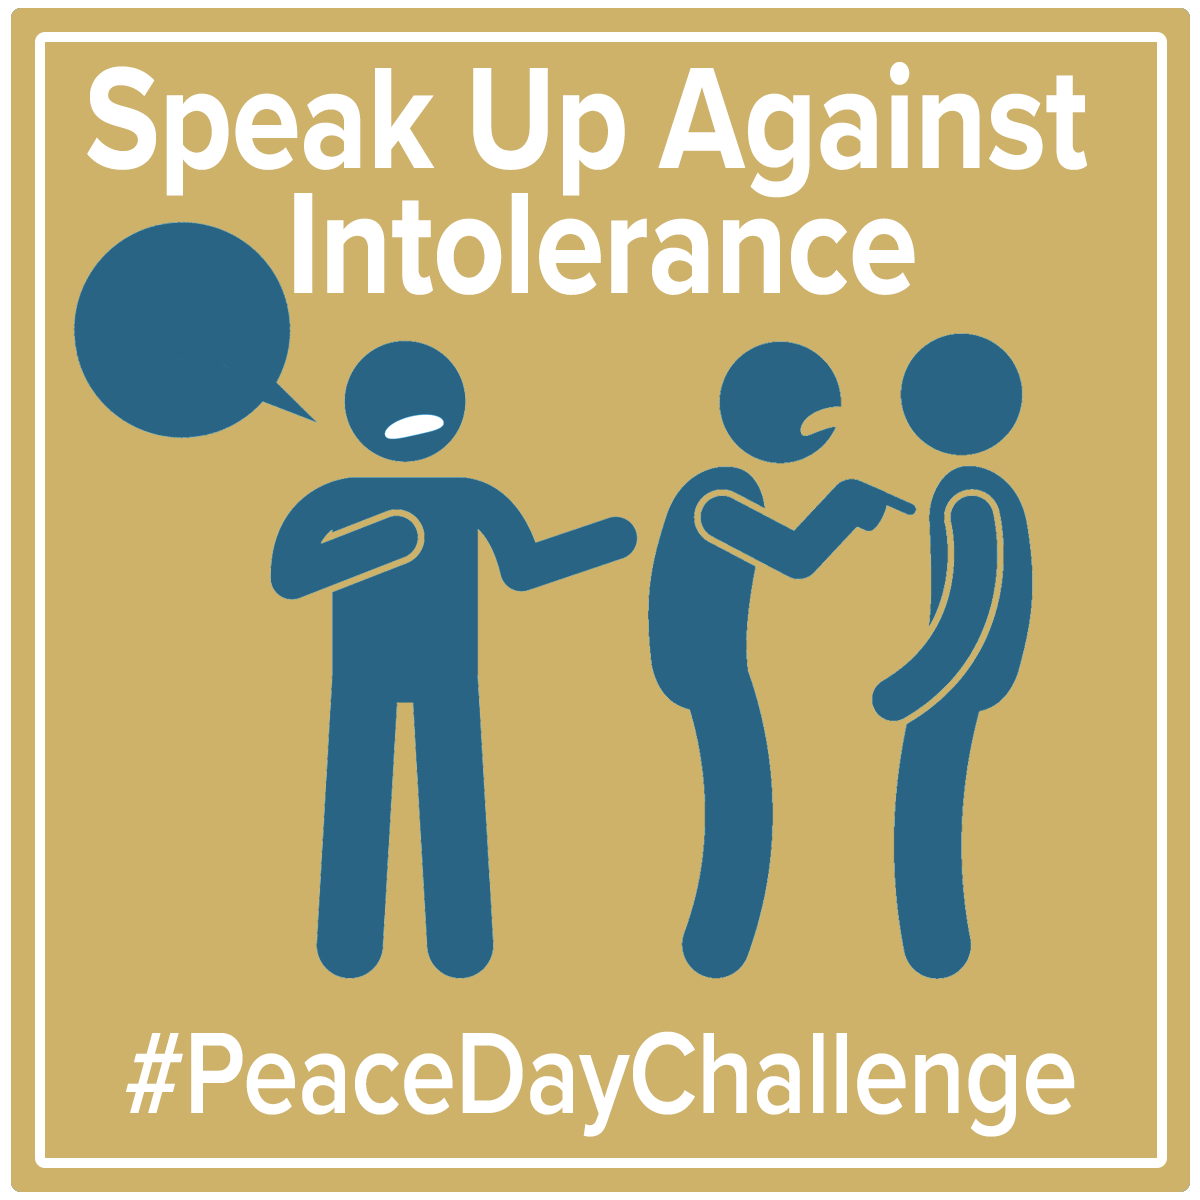 Peace Day Challenge | United States Institute of Peace